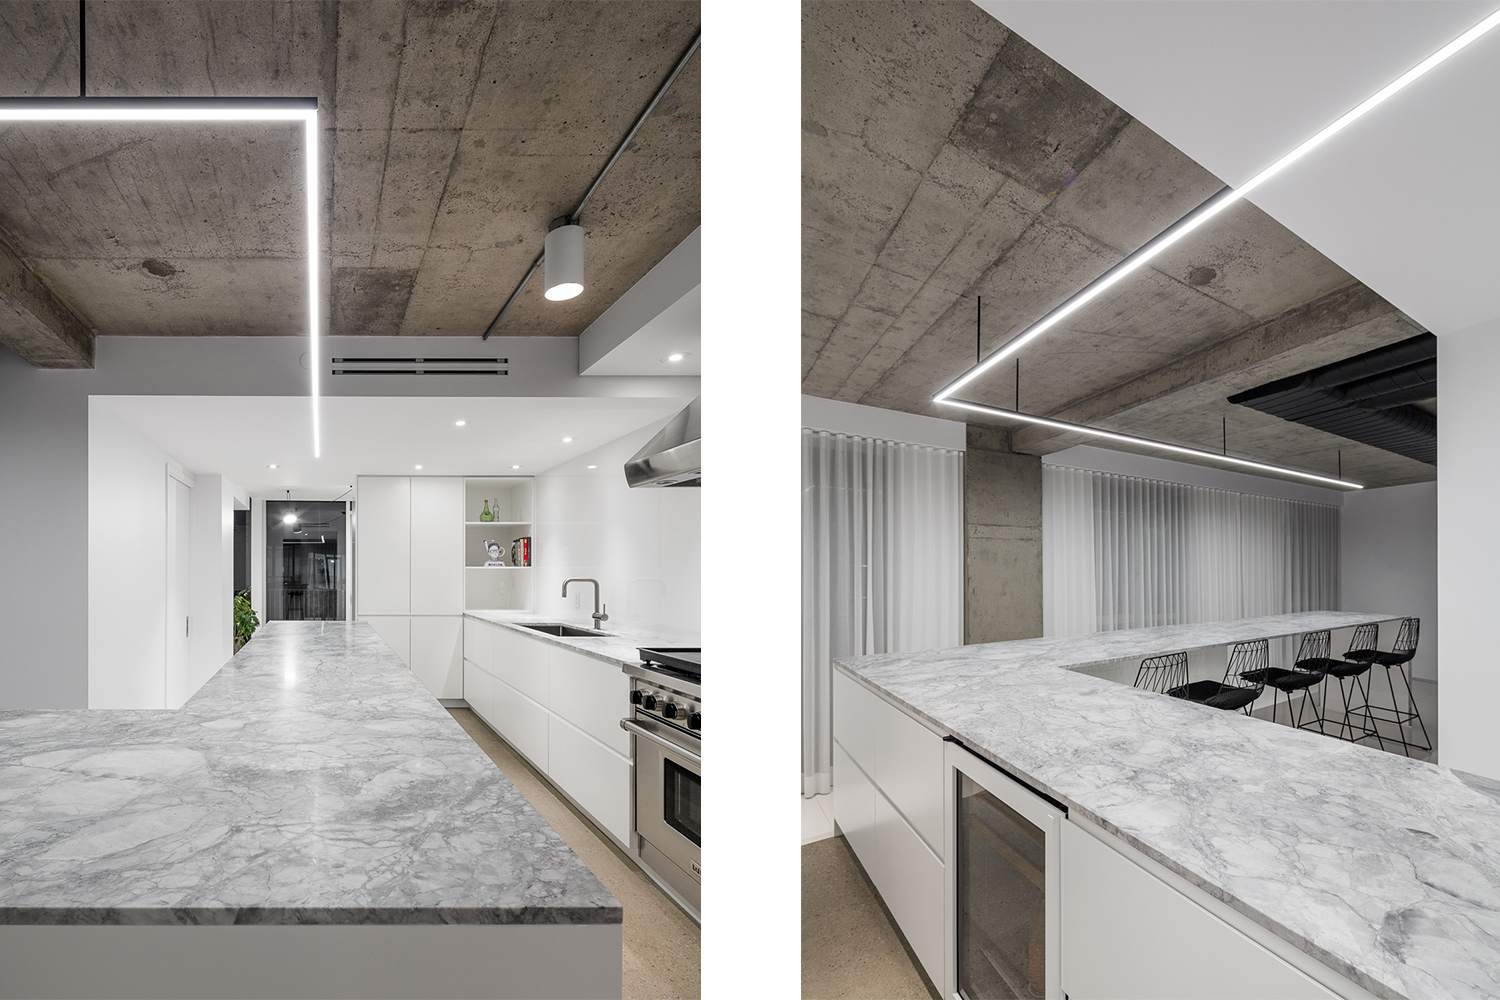 L-shaped kitchen with very large statuario marble countertop. Lacquered white lacquered kitchen cabinet with integrated handle. A linear LED luminaire following the countertop is suspended from the concrete ceiling